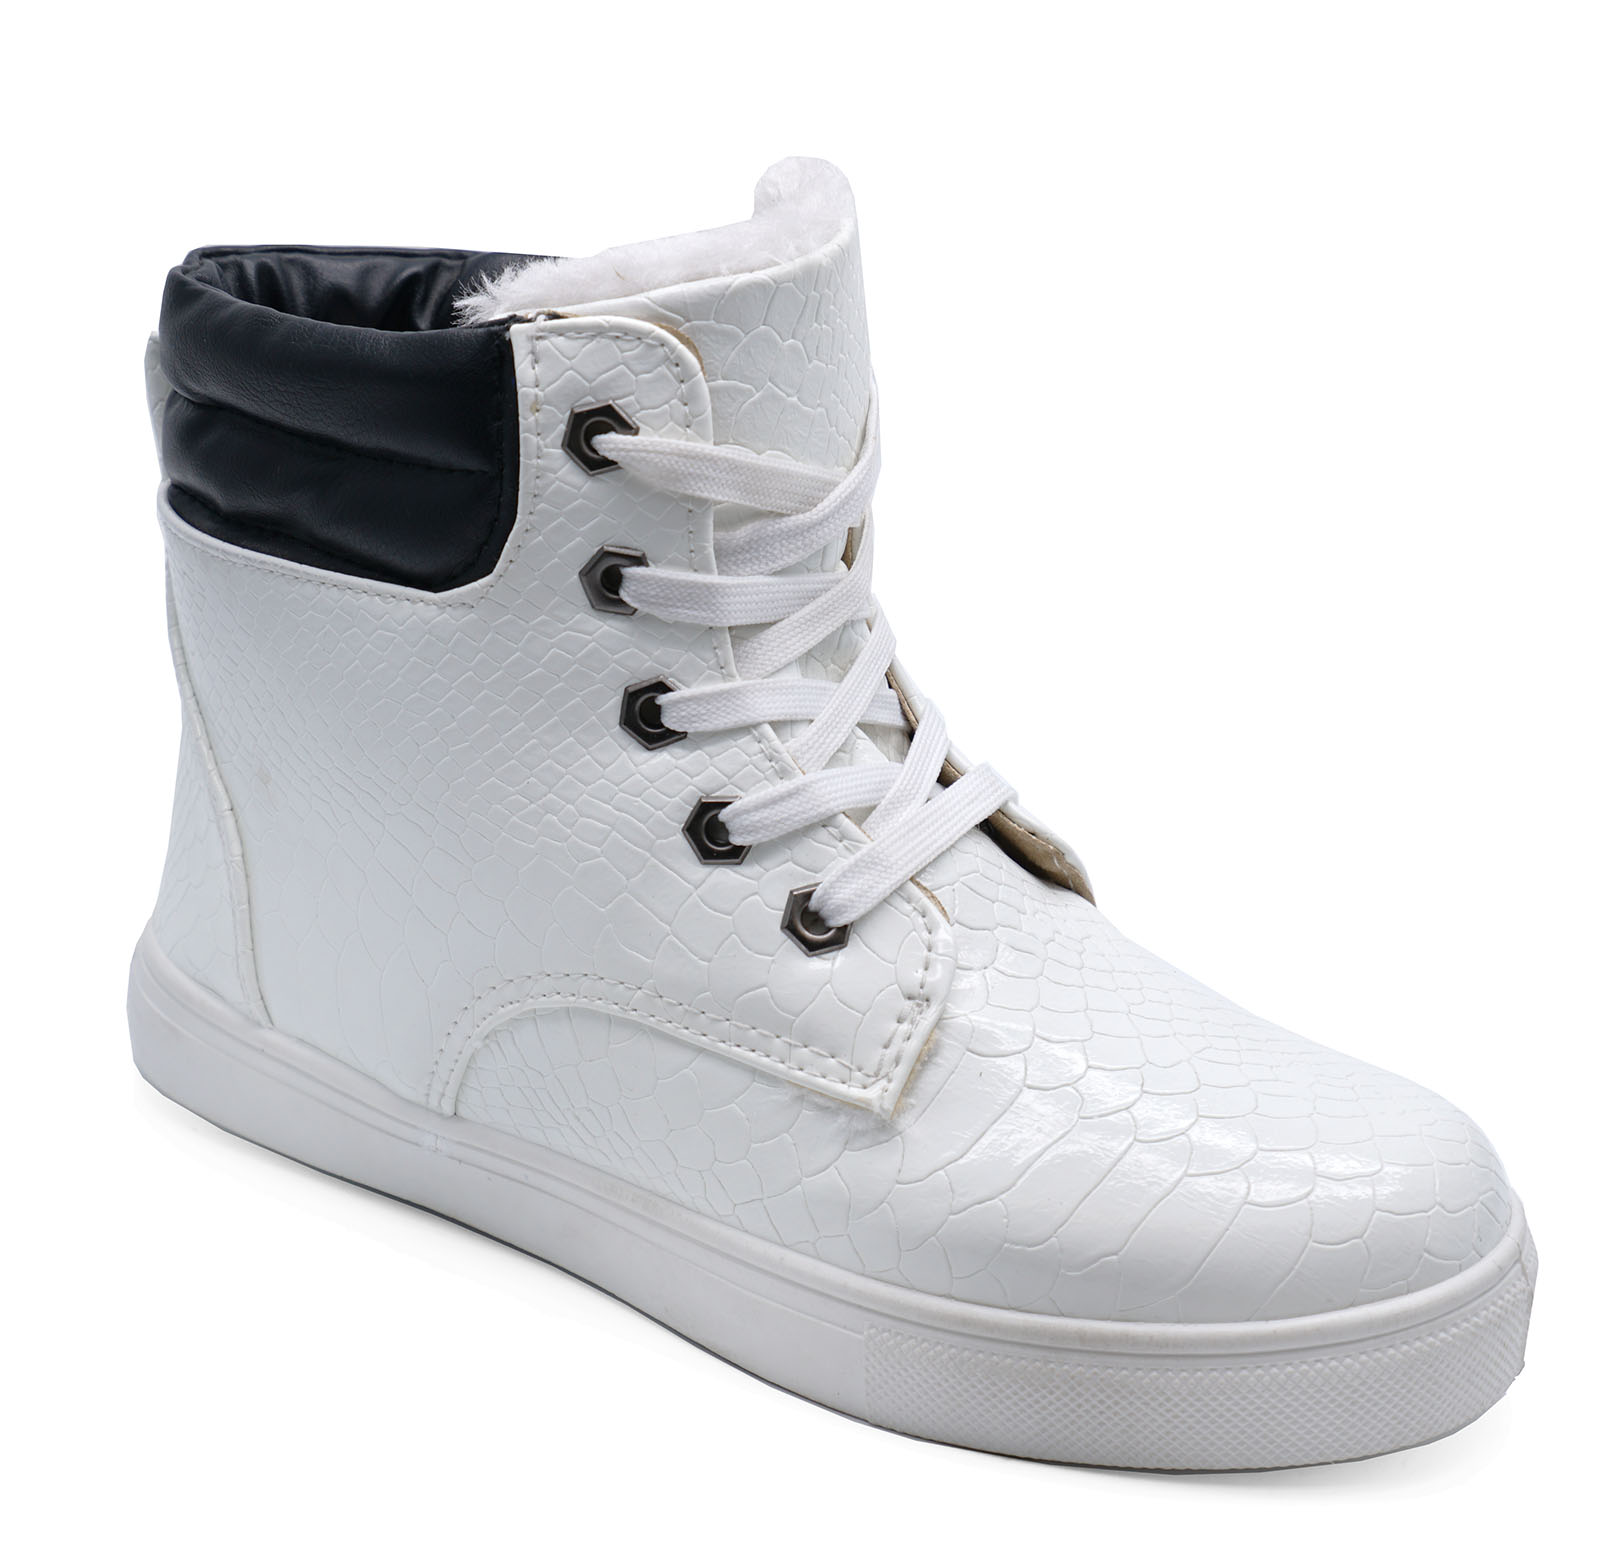 LADIES FLAT WHITE WARM FLEECE-LINED HI-TOP TRAINER COMFY ANKLE BOOTS SHOES 3-8